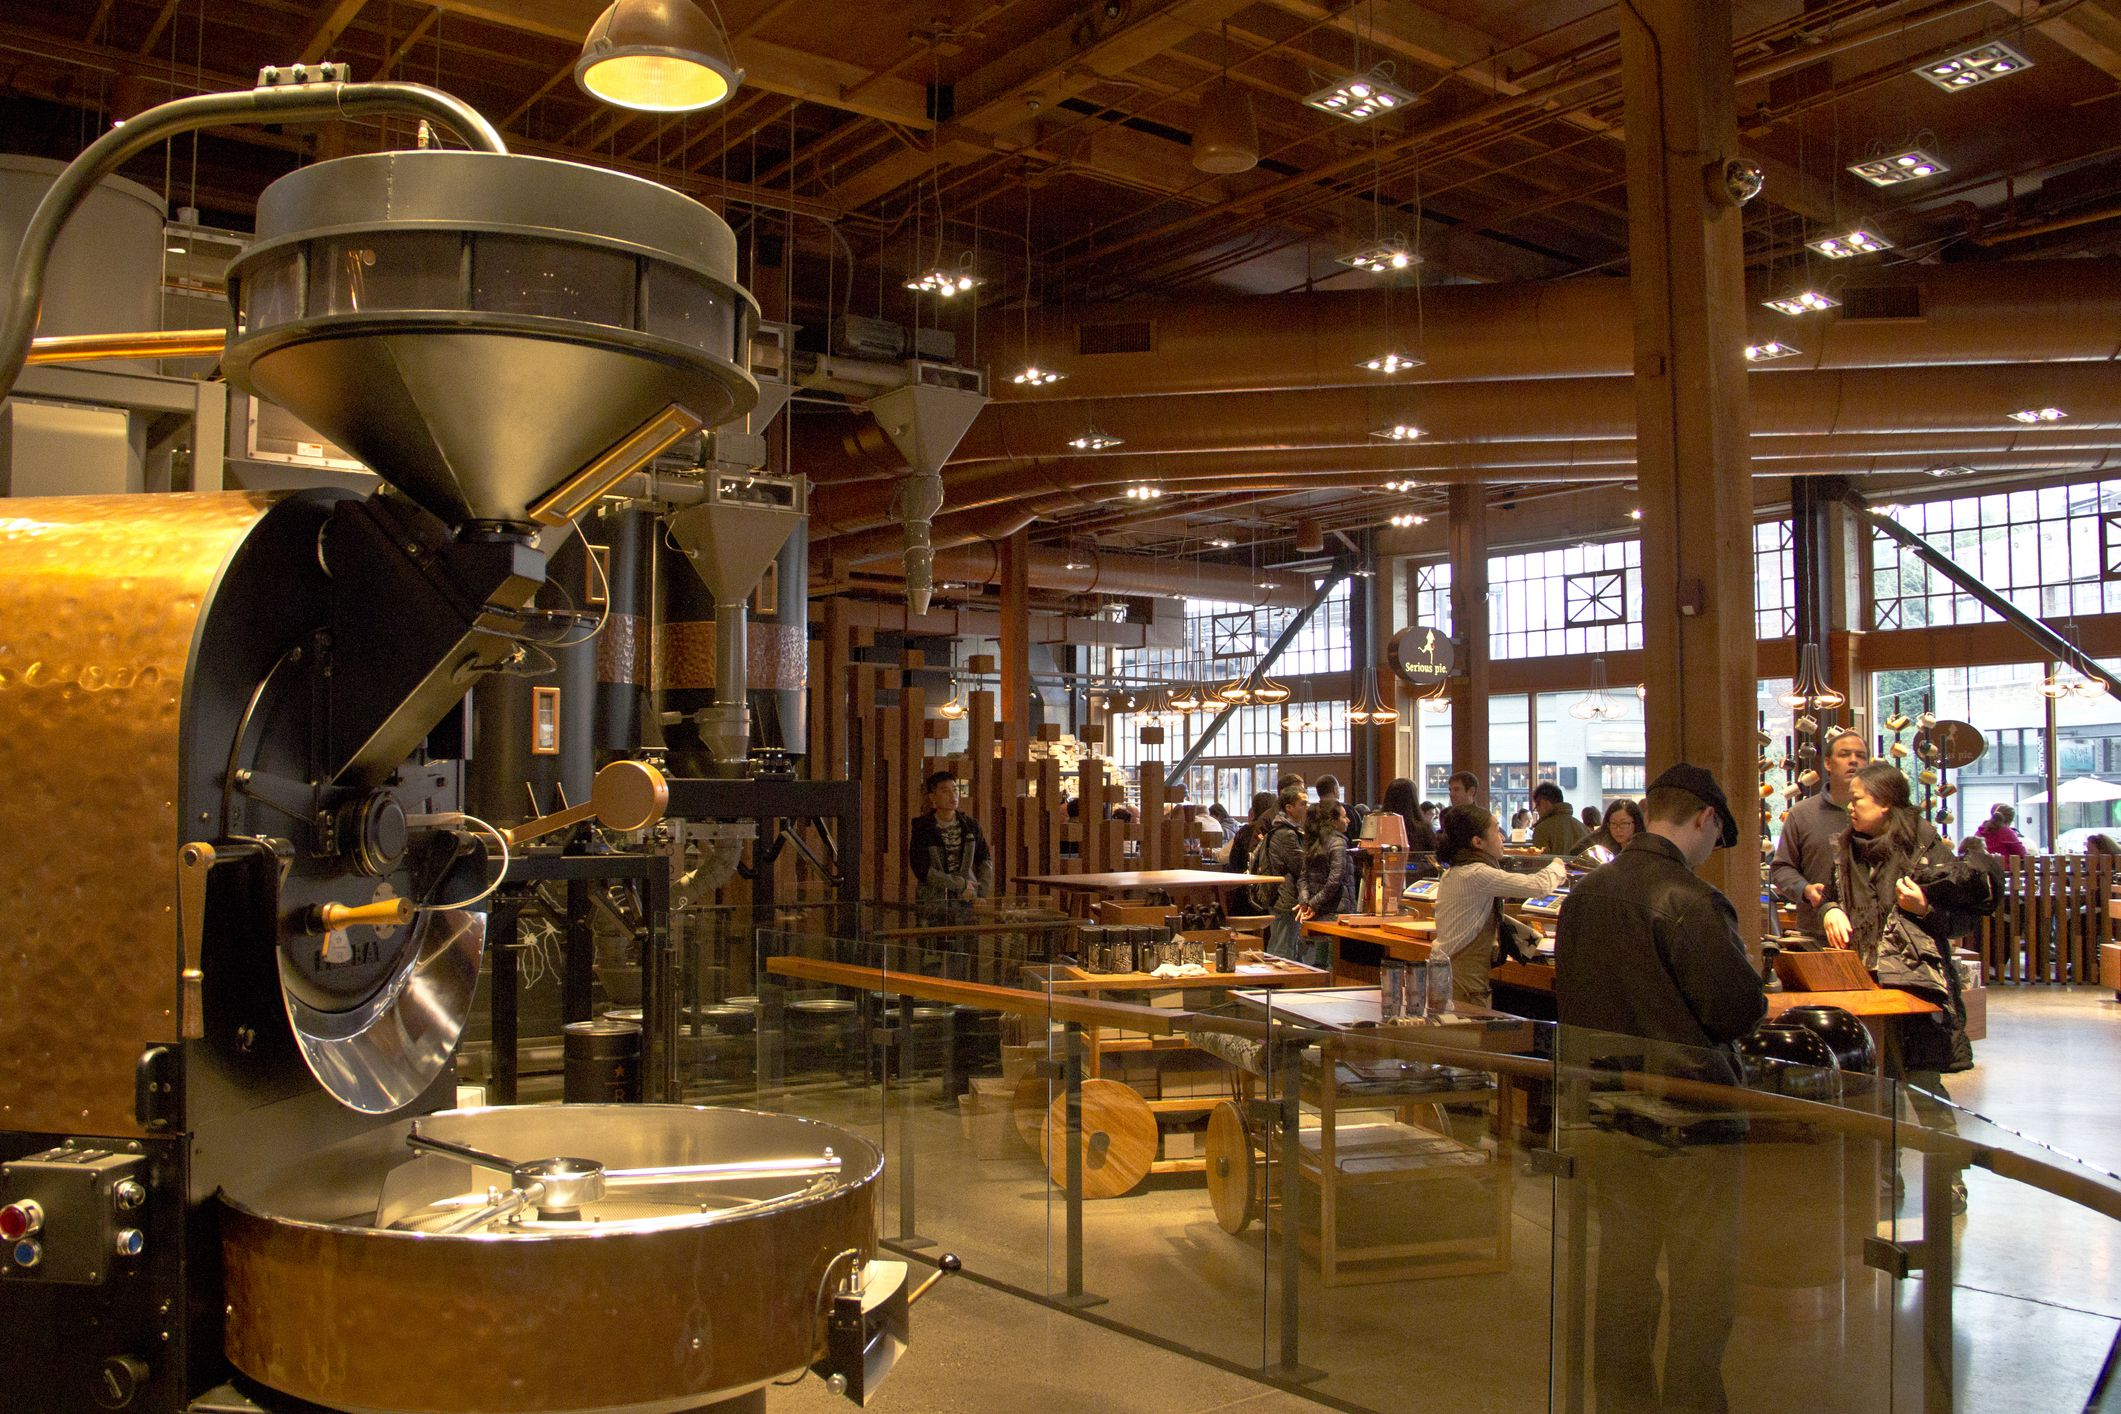 Starbucks Reserve Roastery: The Complete Guide